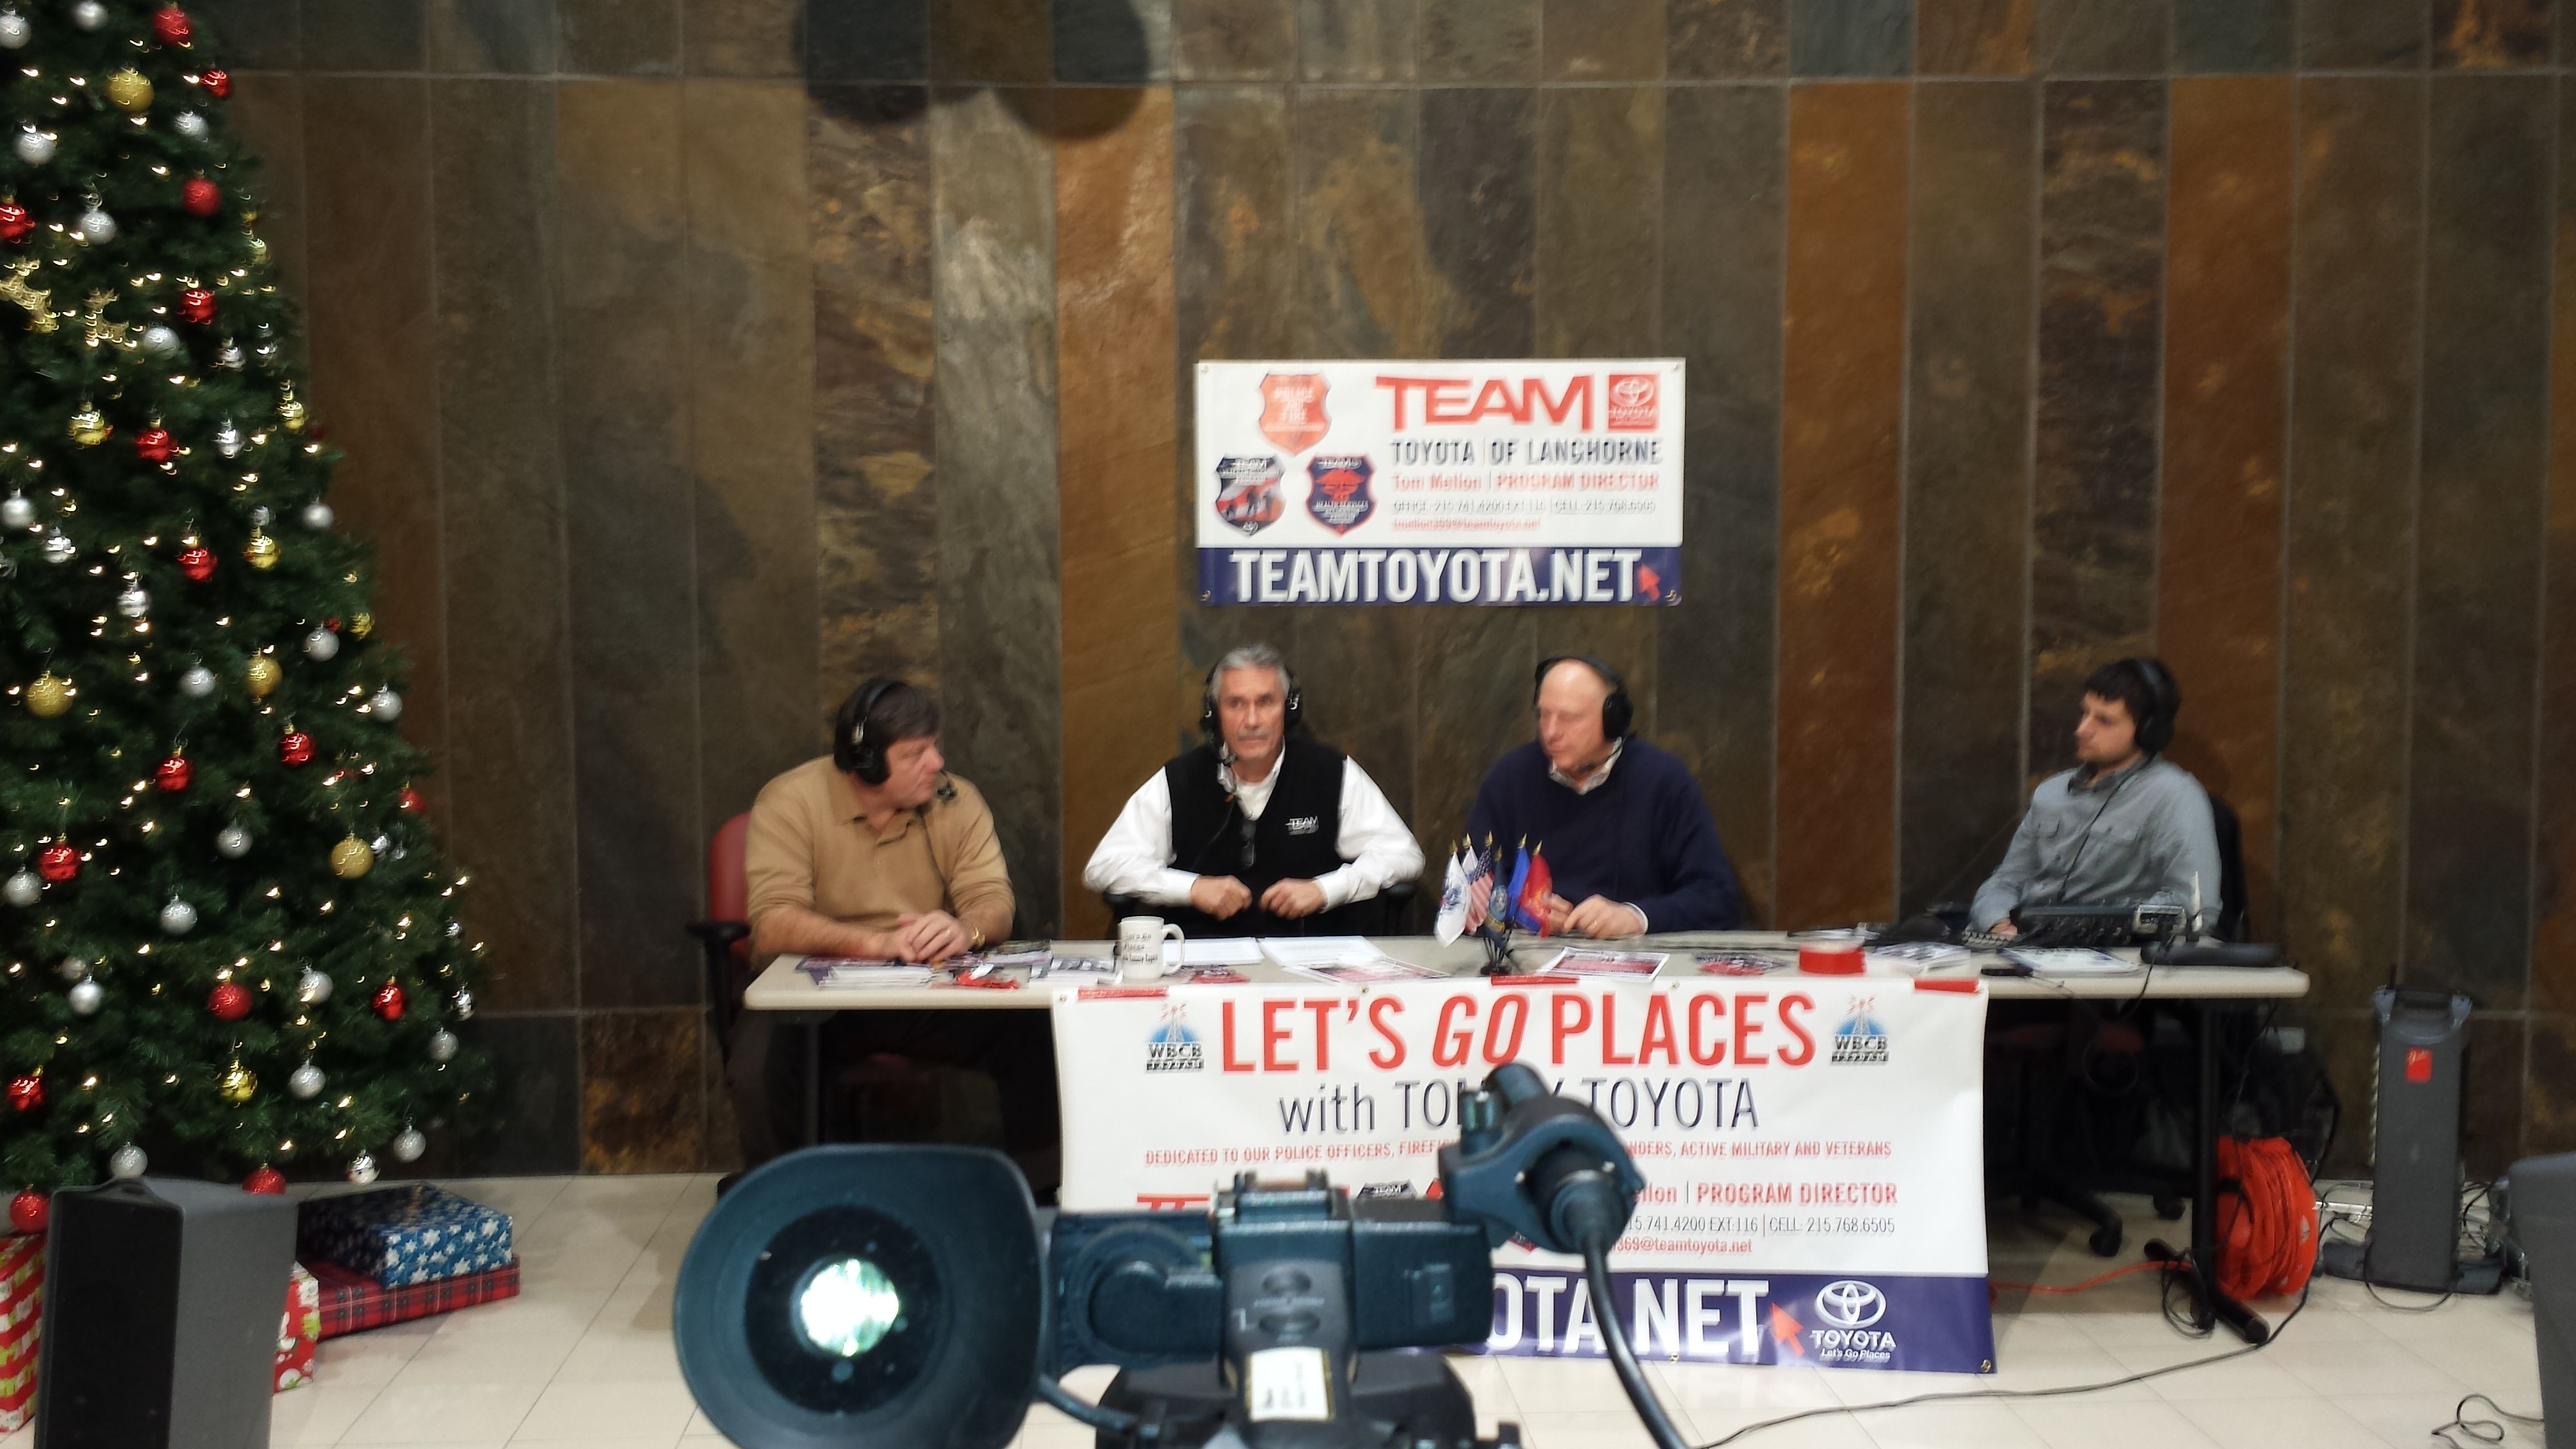 Christmas Radio Show At TEAM Toyota Langhorne, PA 19047. Tommy Toyota (Tom  Mellon) Had Many Honored Guests Including Owner Paul Muller, US Congressman  ...